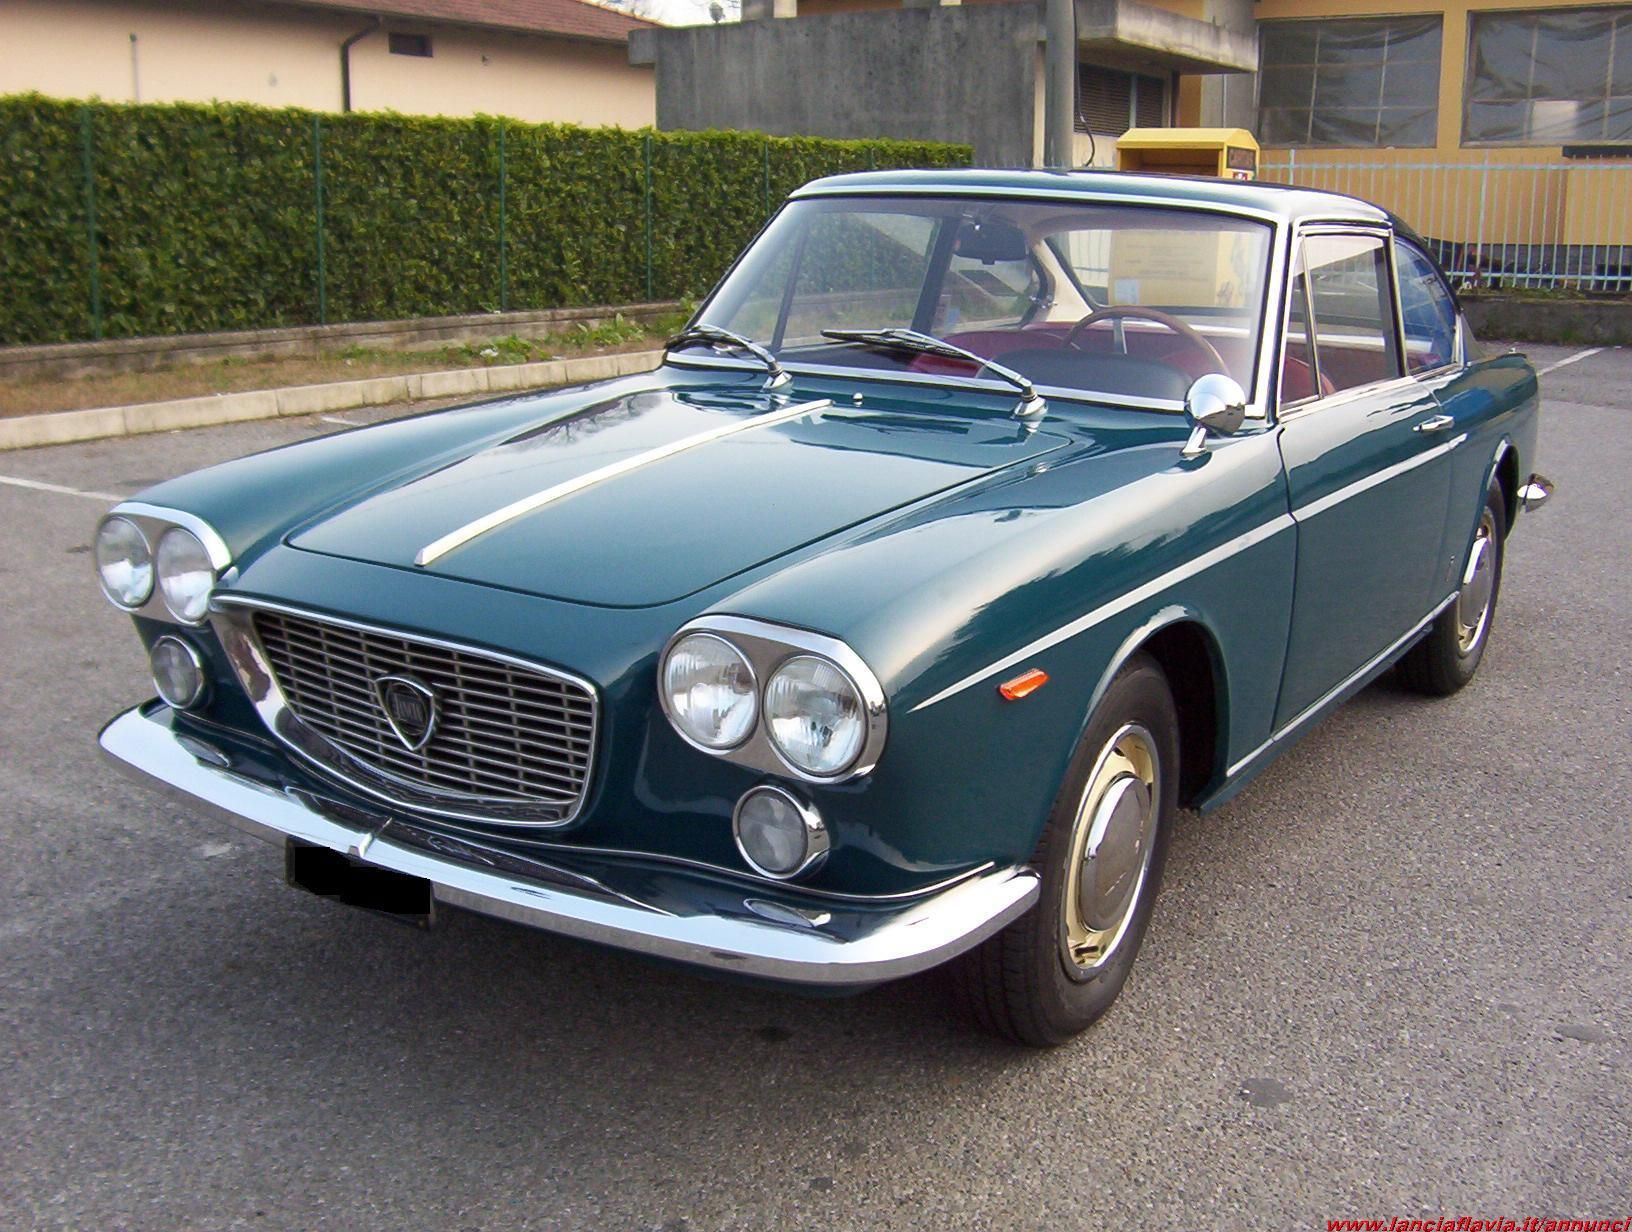 lancia flavia coup 1500 lancia pinterest cars fiat cars and fiat. Black Bedroom Furniture Sets. Home Design Ideas